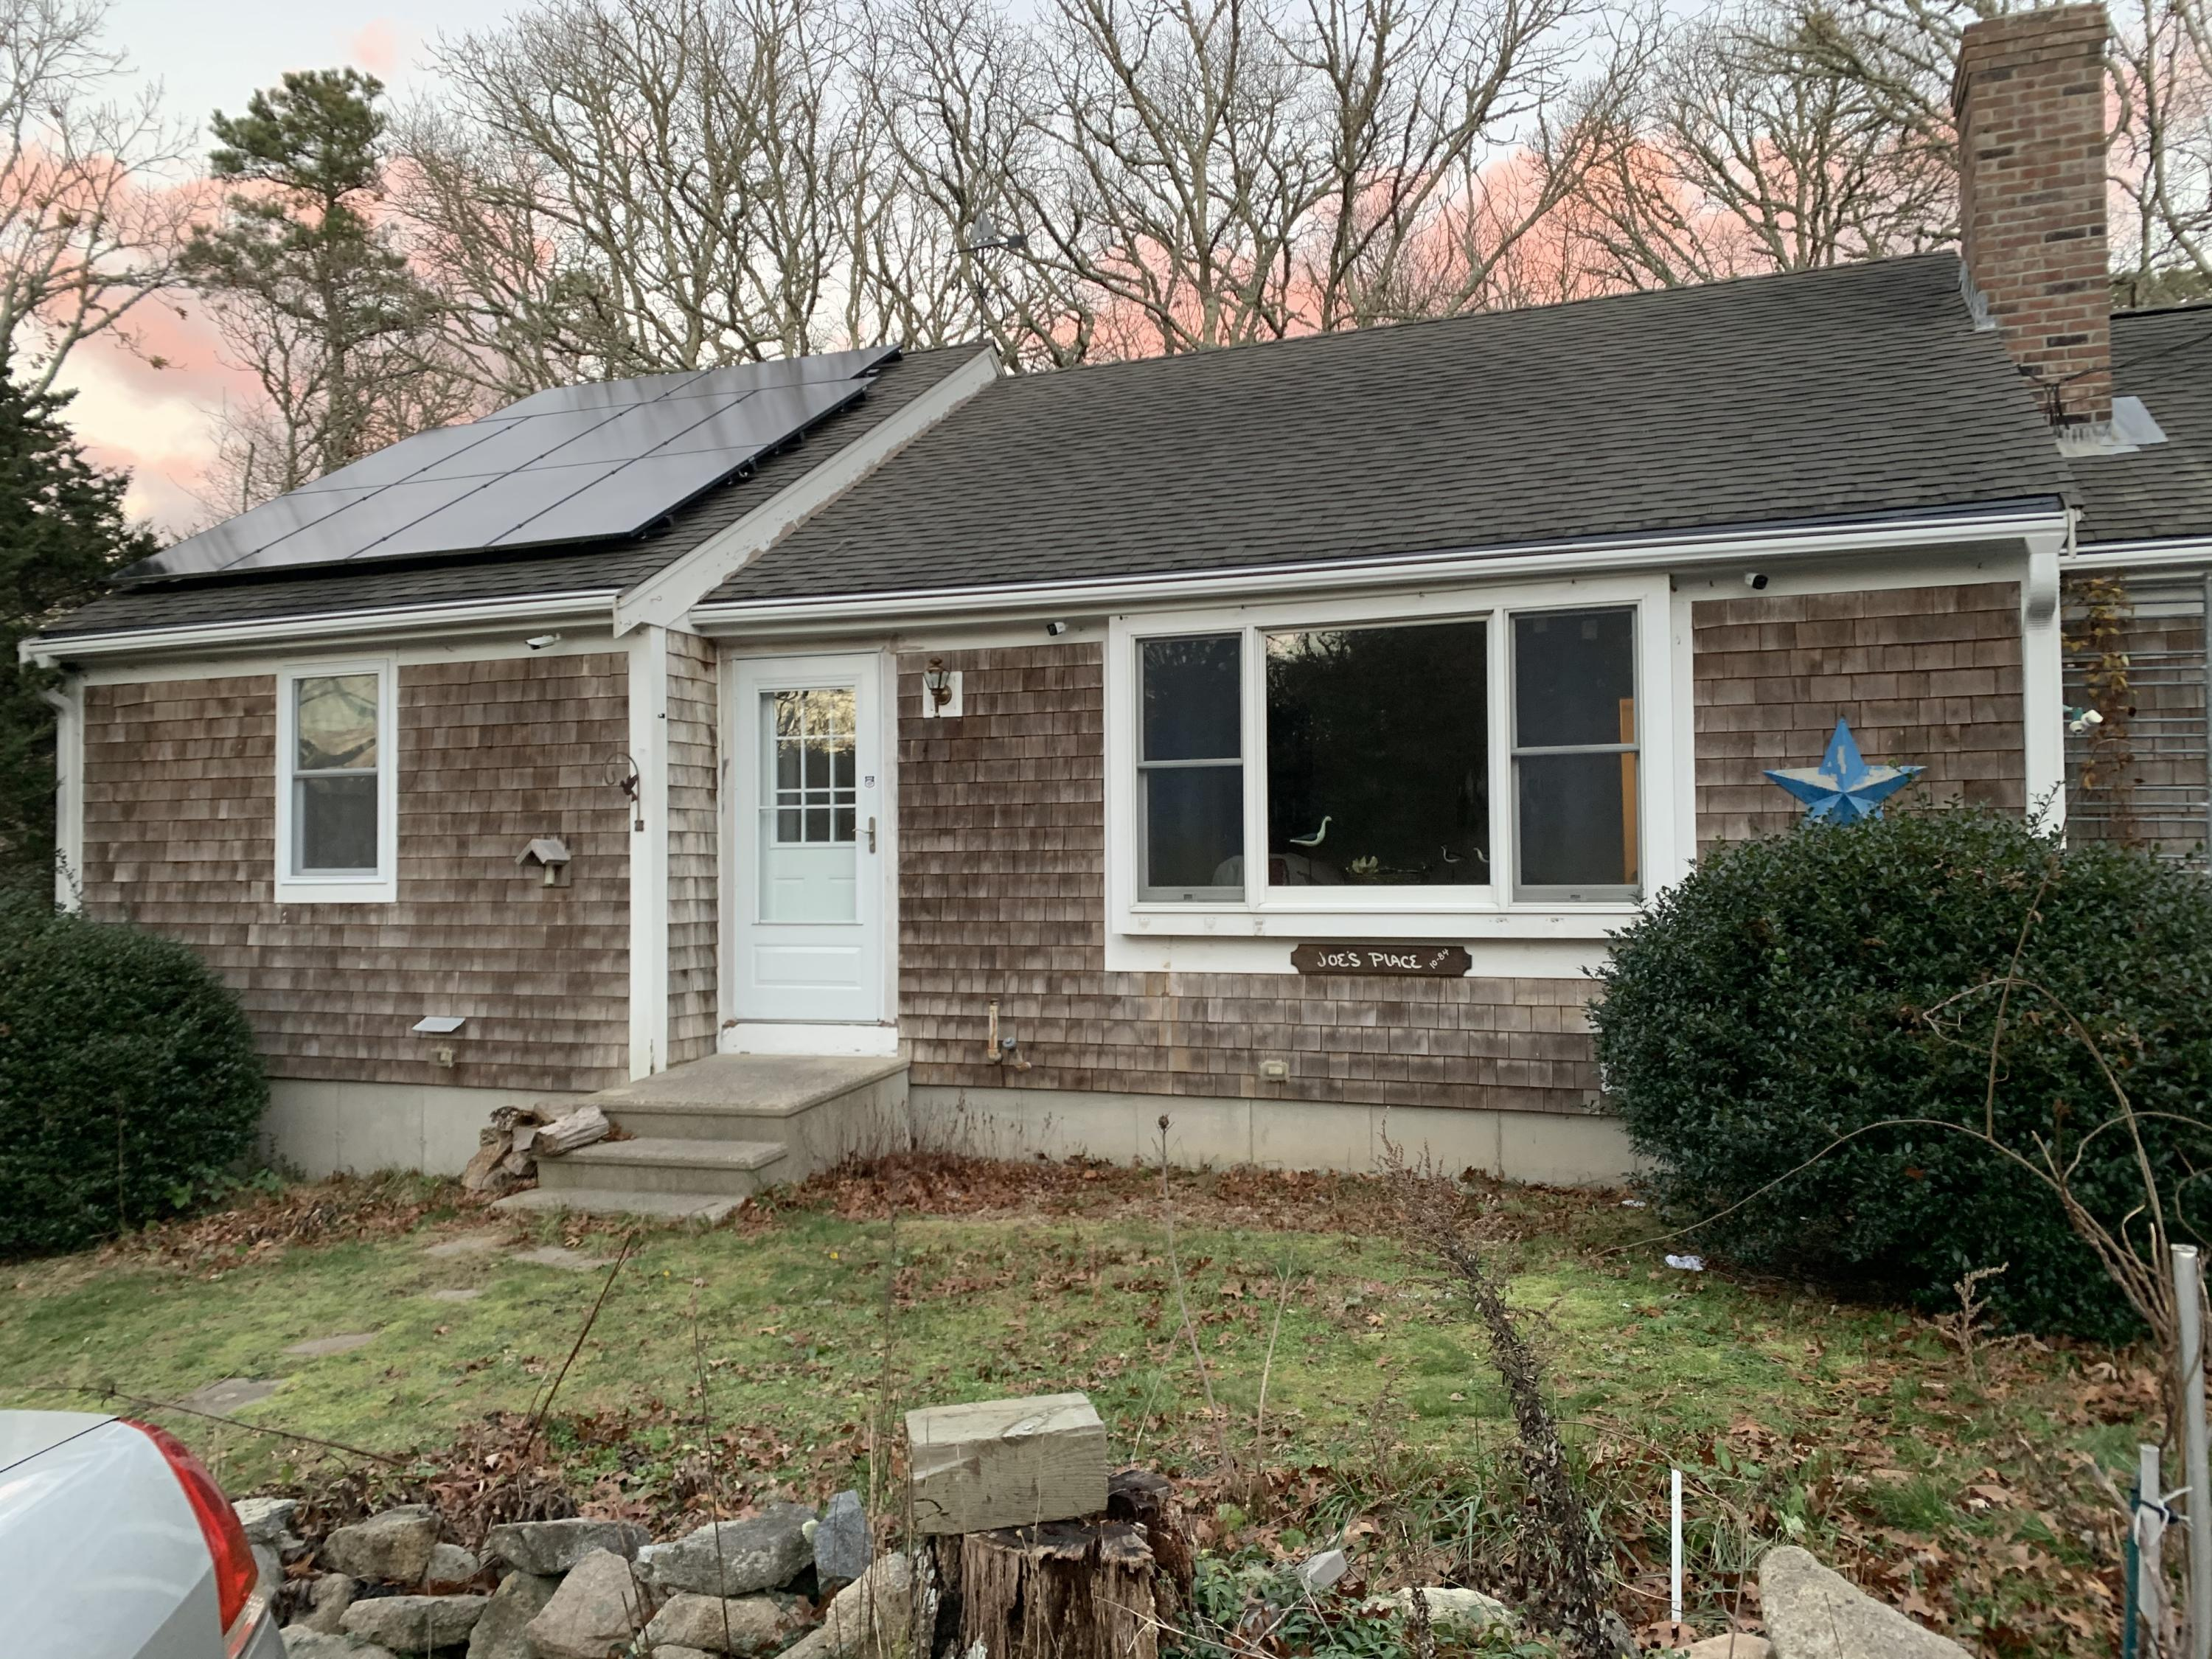 141 Commons Way, Brewster MA, 02631 sales details